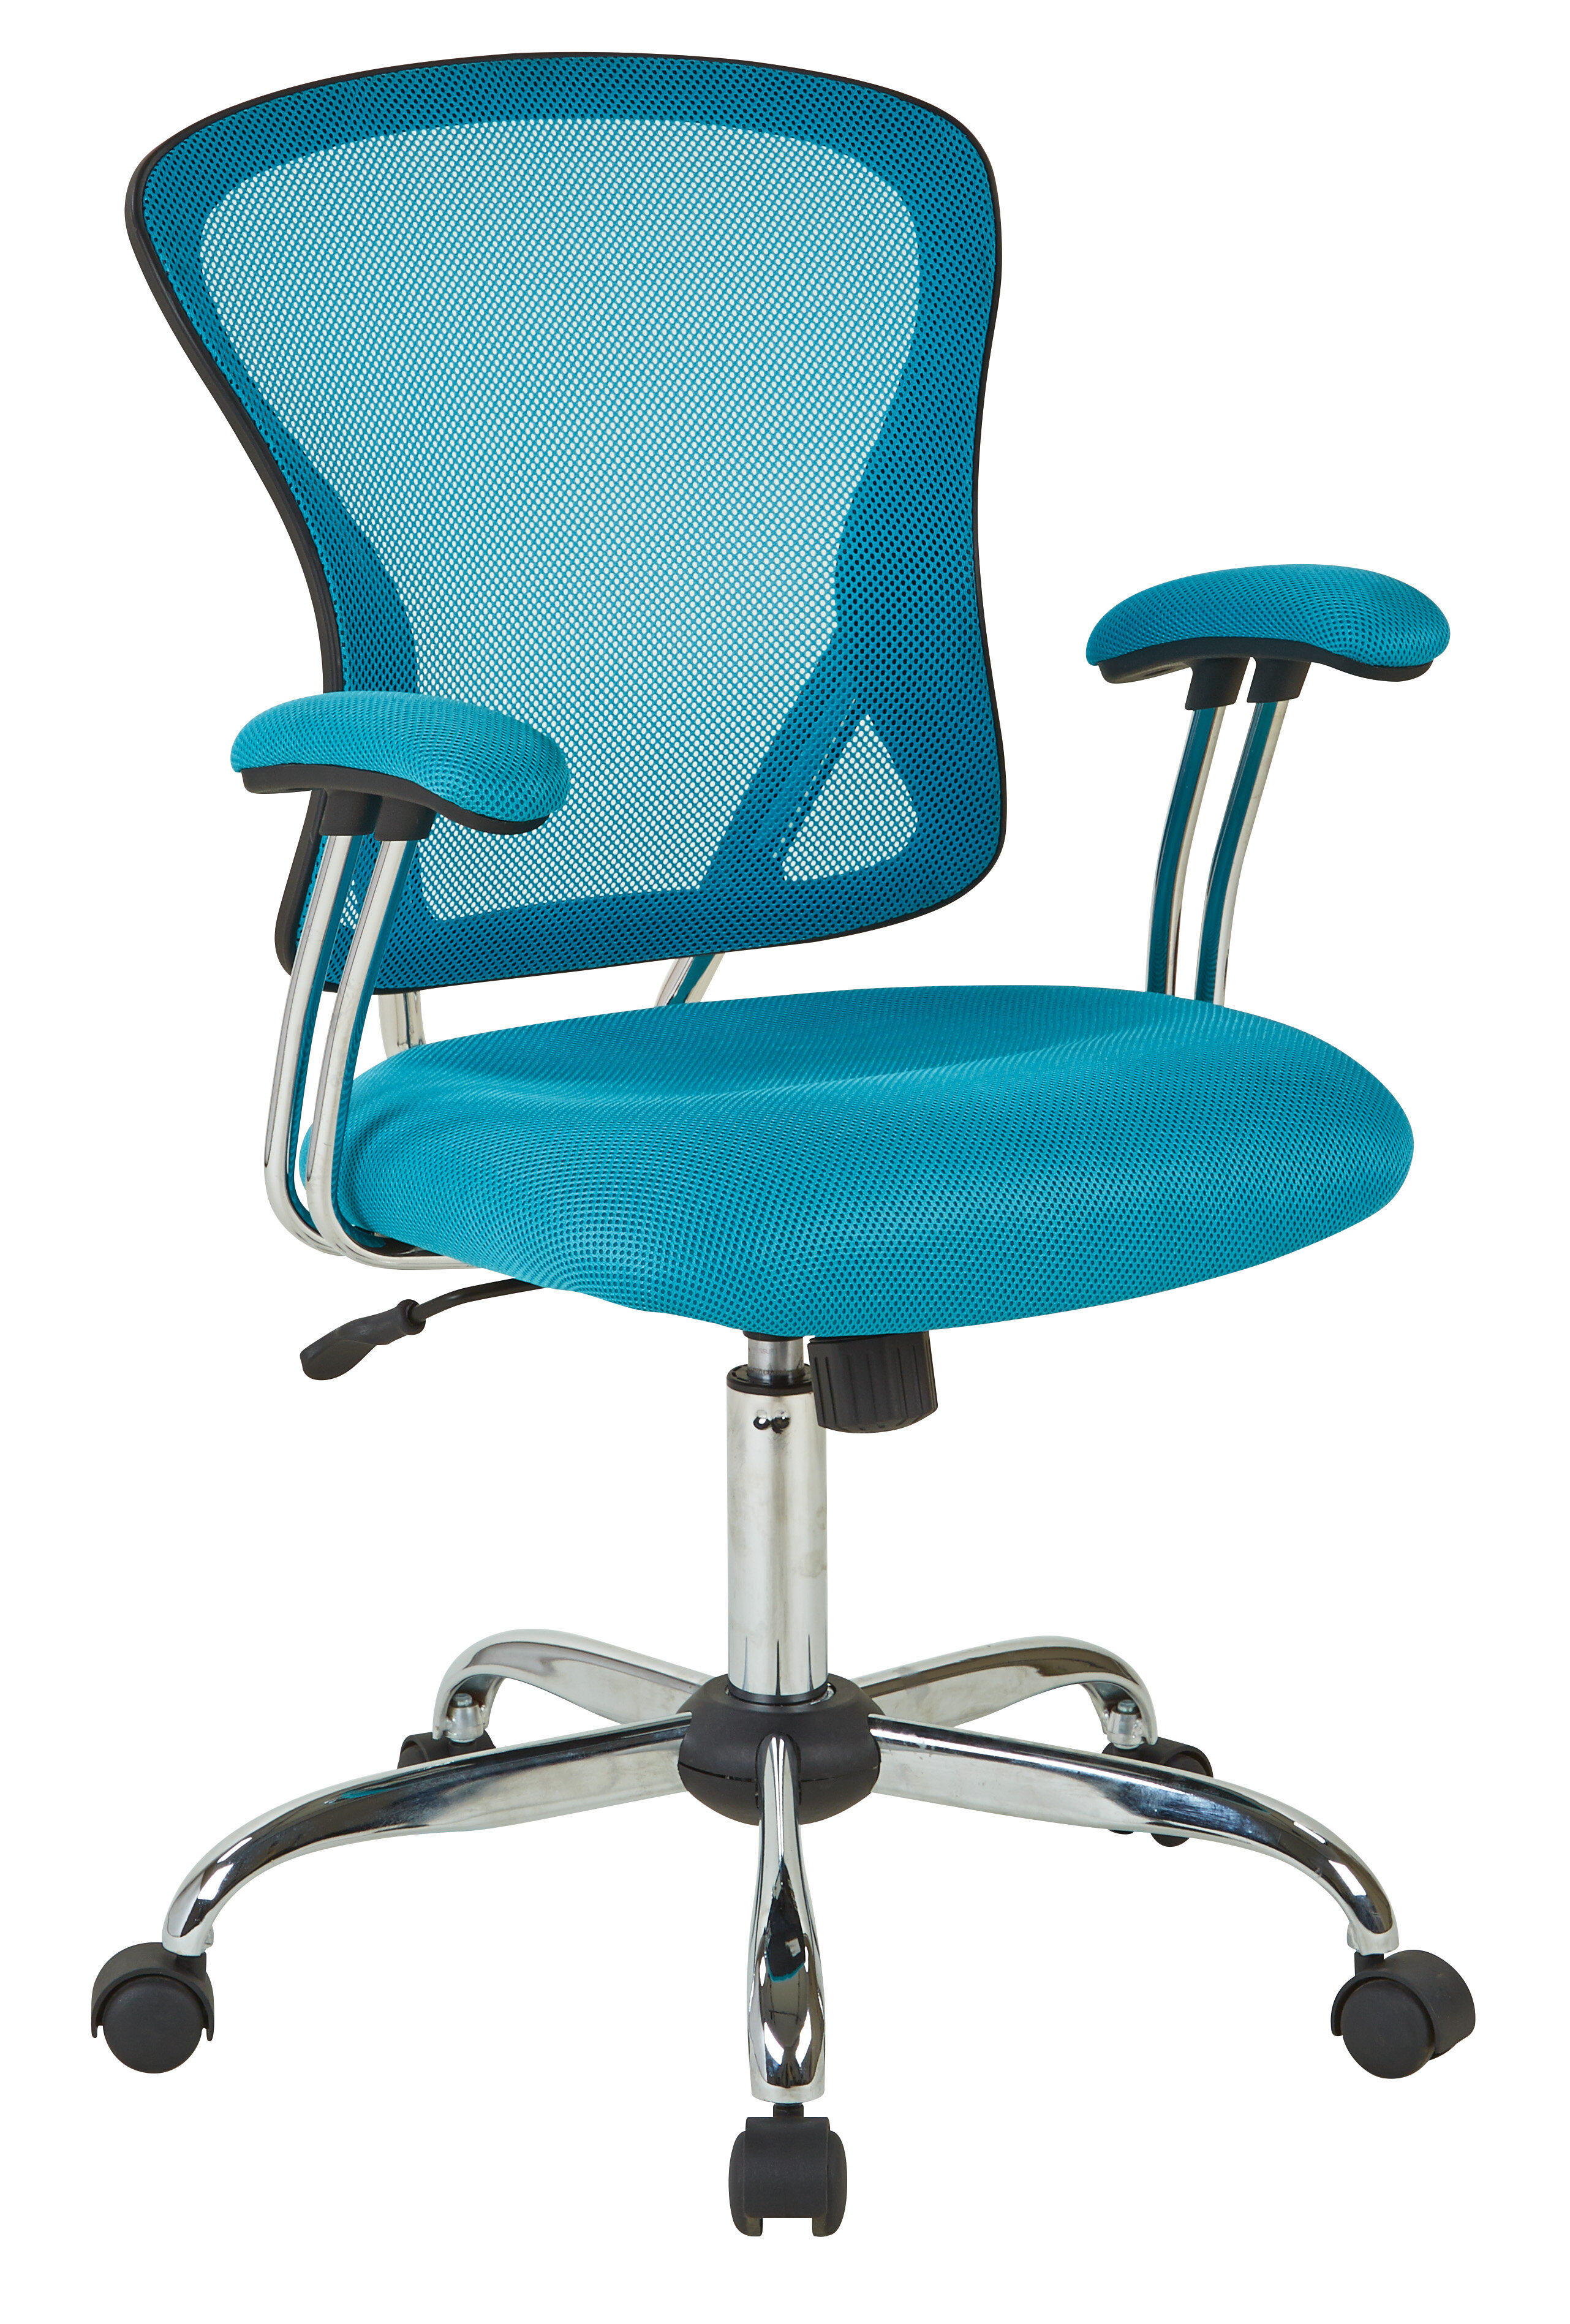 blue gb is alrik sit in en chair desk ikea chairs swivel adjustable office benches since products art you the height stools comfortably